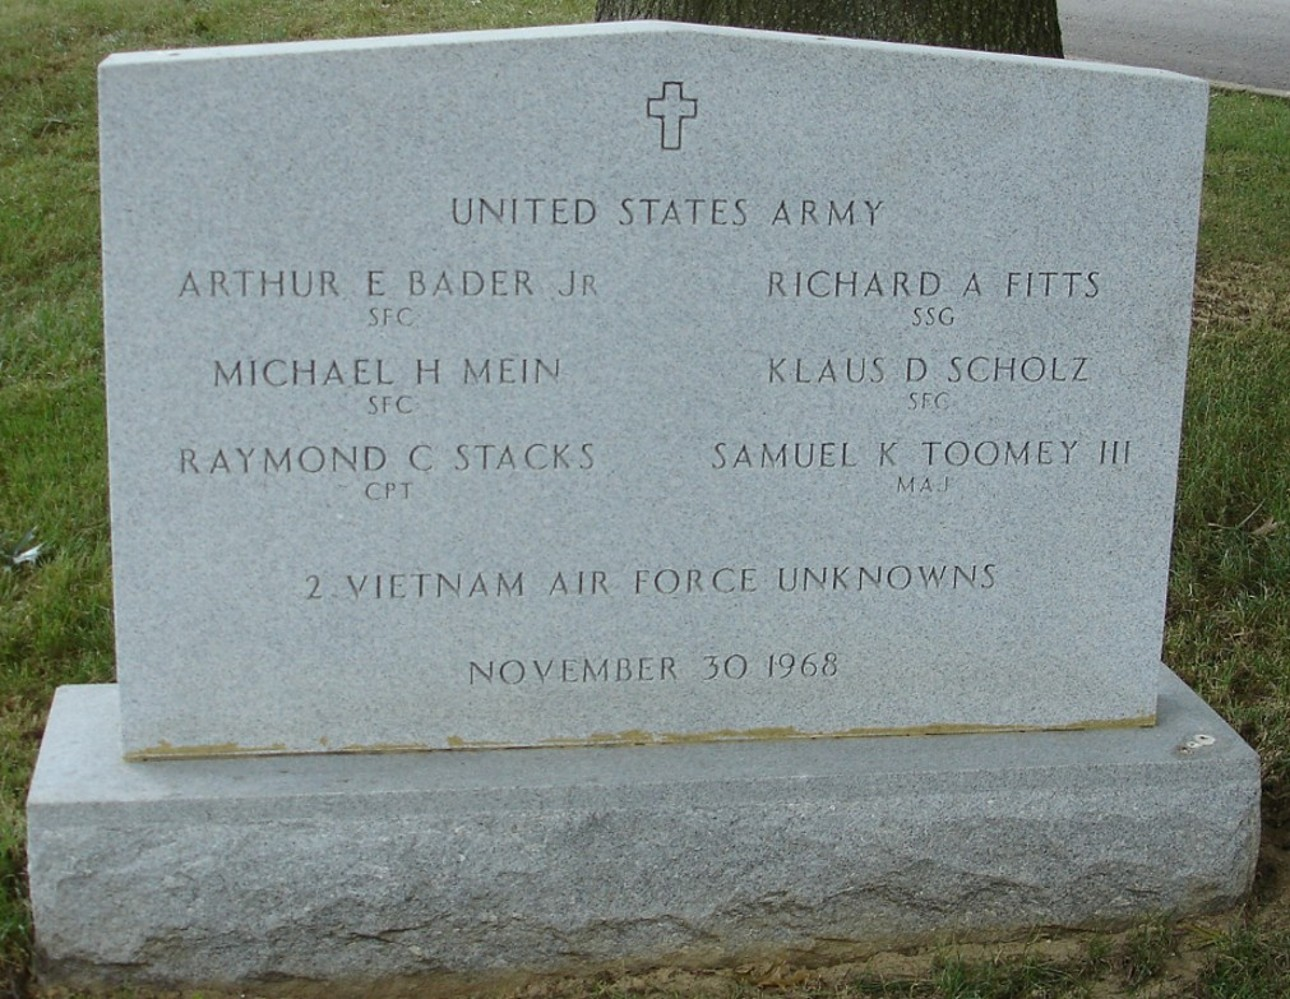 https://i1.wp.com/www.arlingtoncemetery.net/aircrew-11301968-gravesite-photo-august-2006-001.jpg